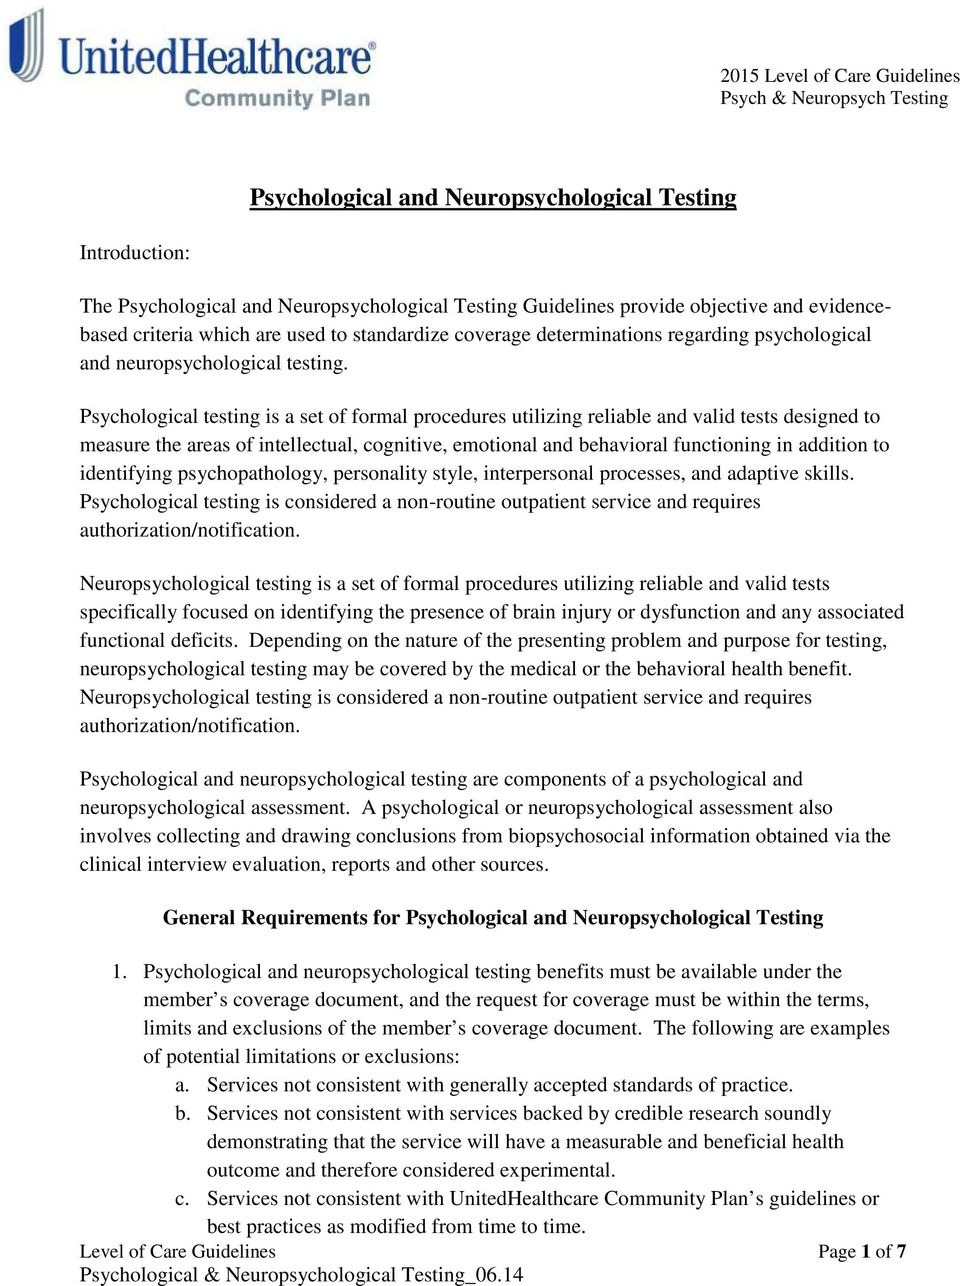 Psychological testing is a set of formal procedures utilizing reliable and valid tests designed to measure the areas of intellectual, cognitive, emotional and behavioral functioning in addition to